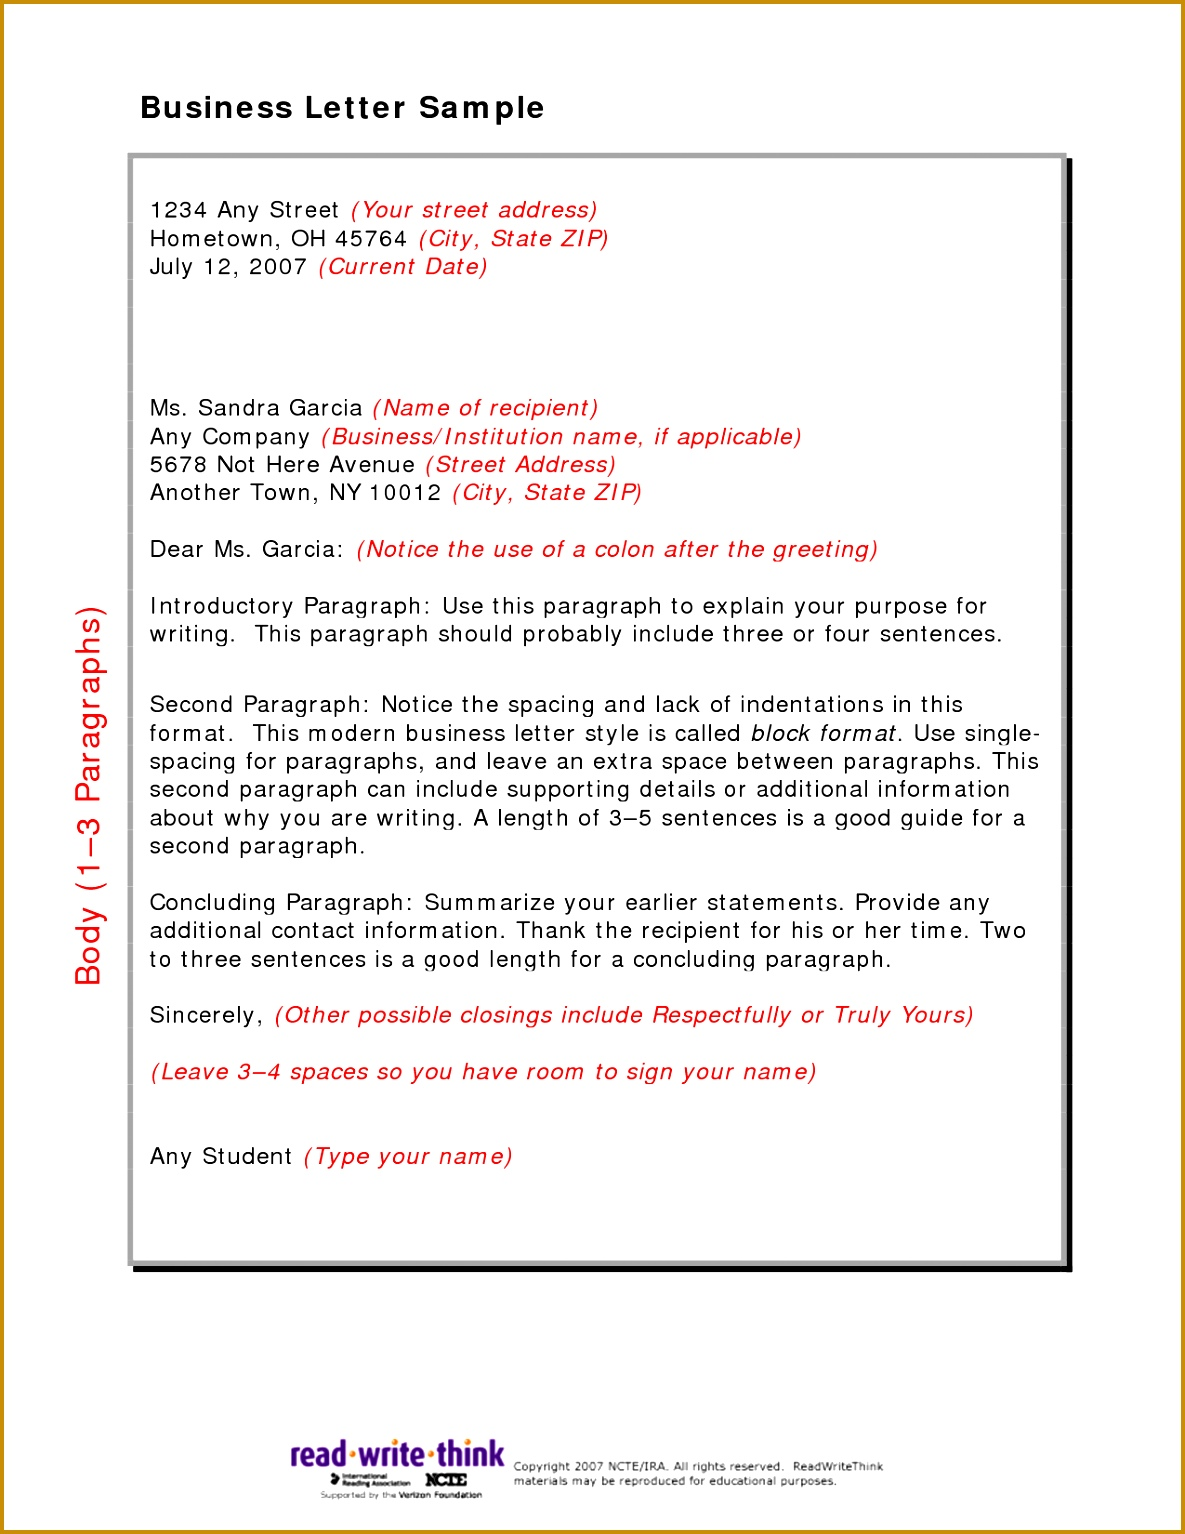 Friendly letter format for kids choice image letter samples format friendly letter format for kids choice 15341185